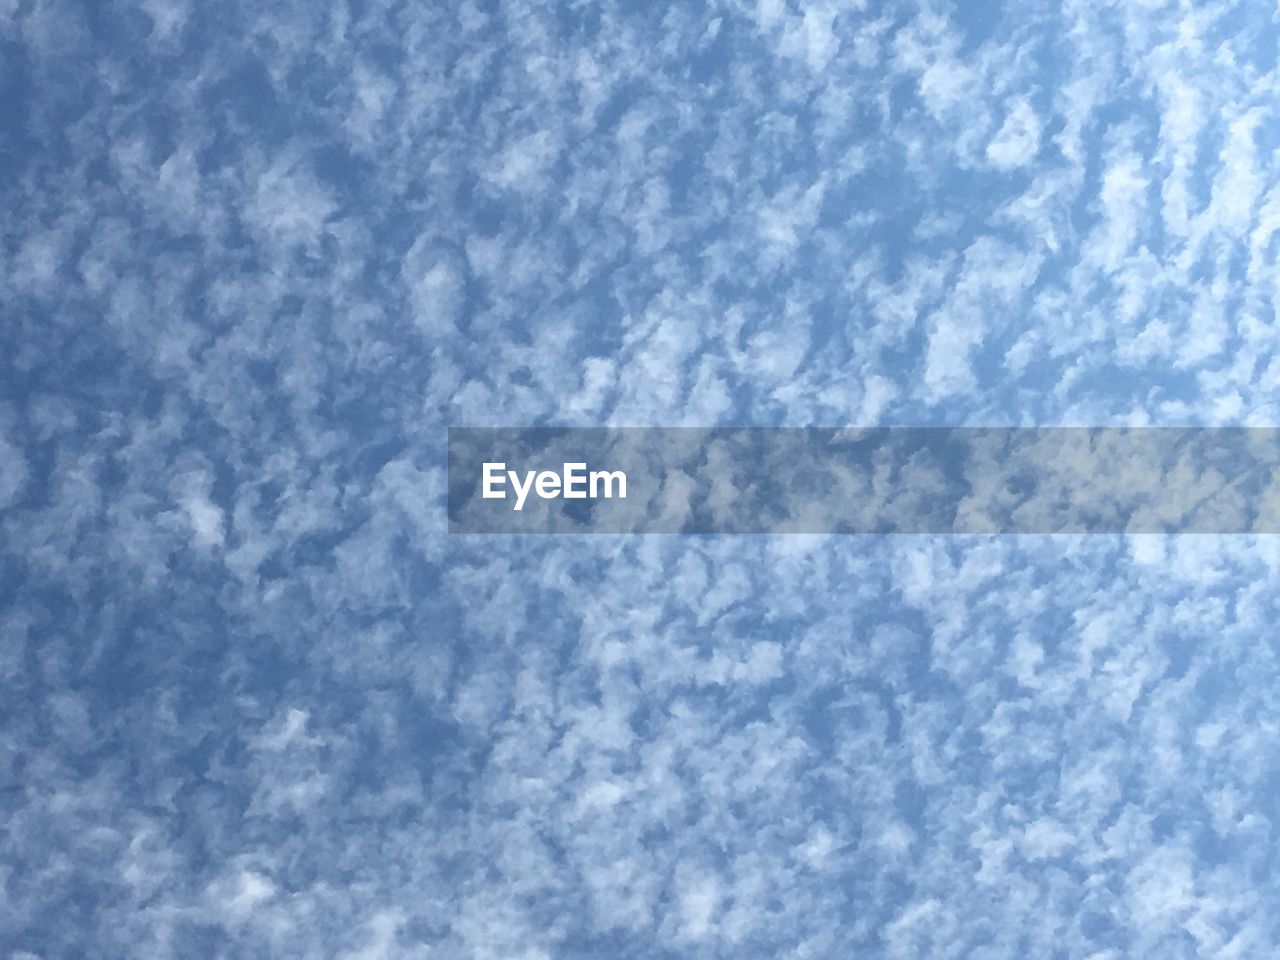 sky, blue, backgrounds, cloud - sky, nature, cloudscape, full frame, sky only, low angle view, no people, beauty in nature, textured, abstract, day, outdoors, scenics, close-up